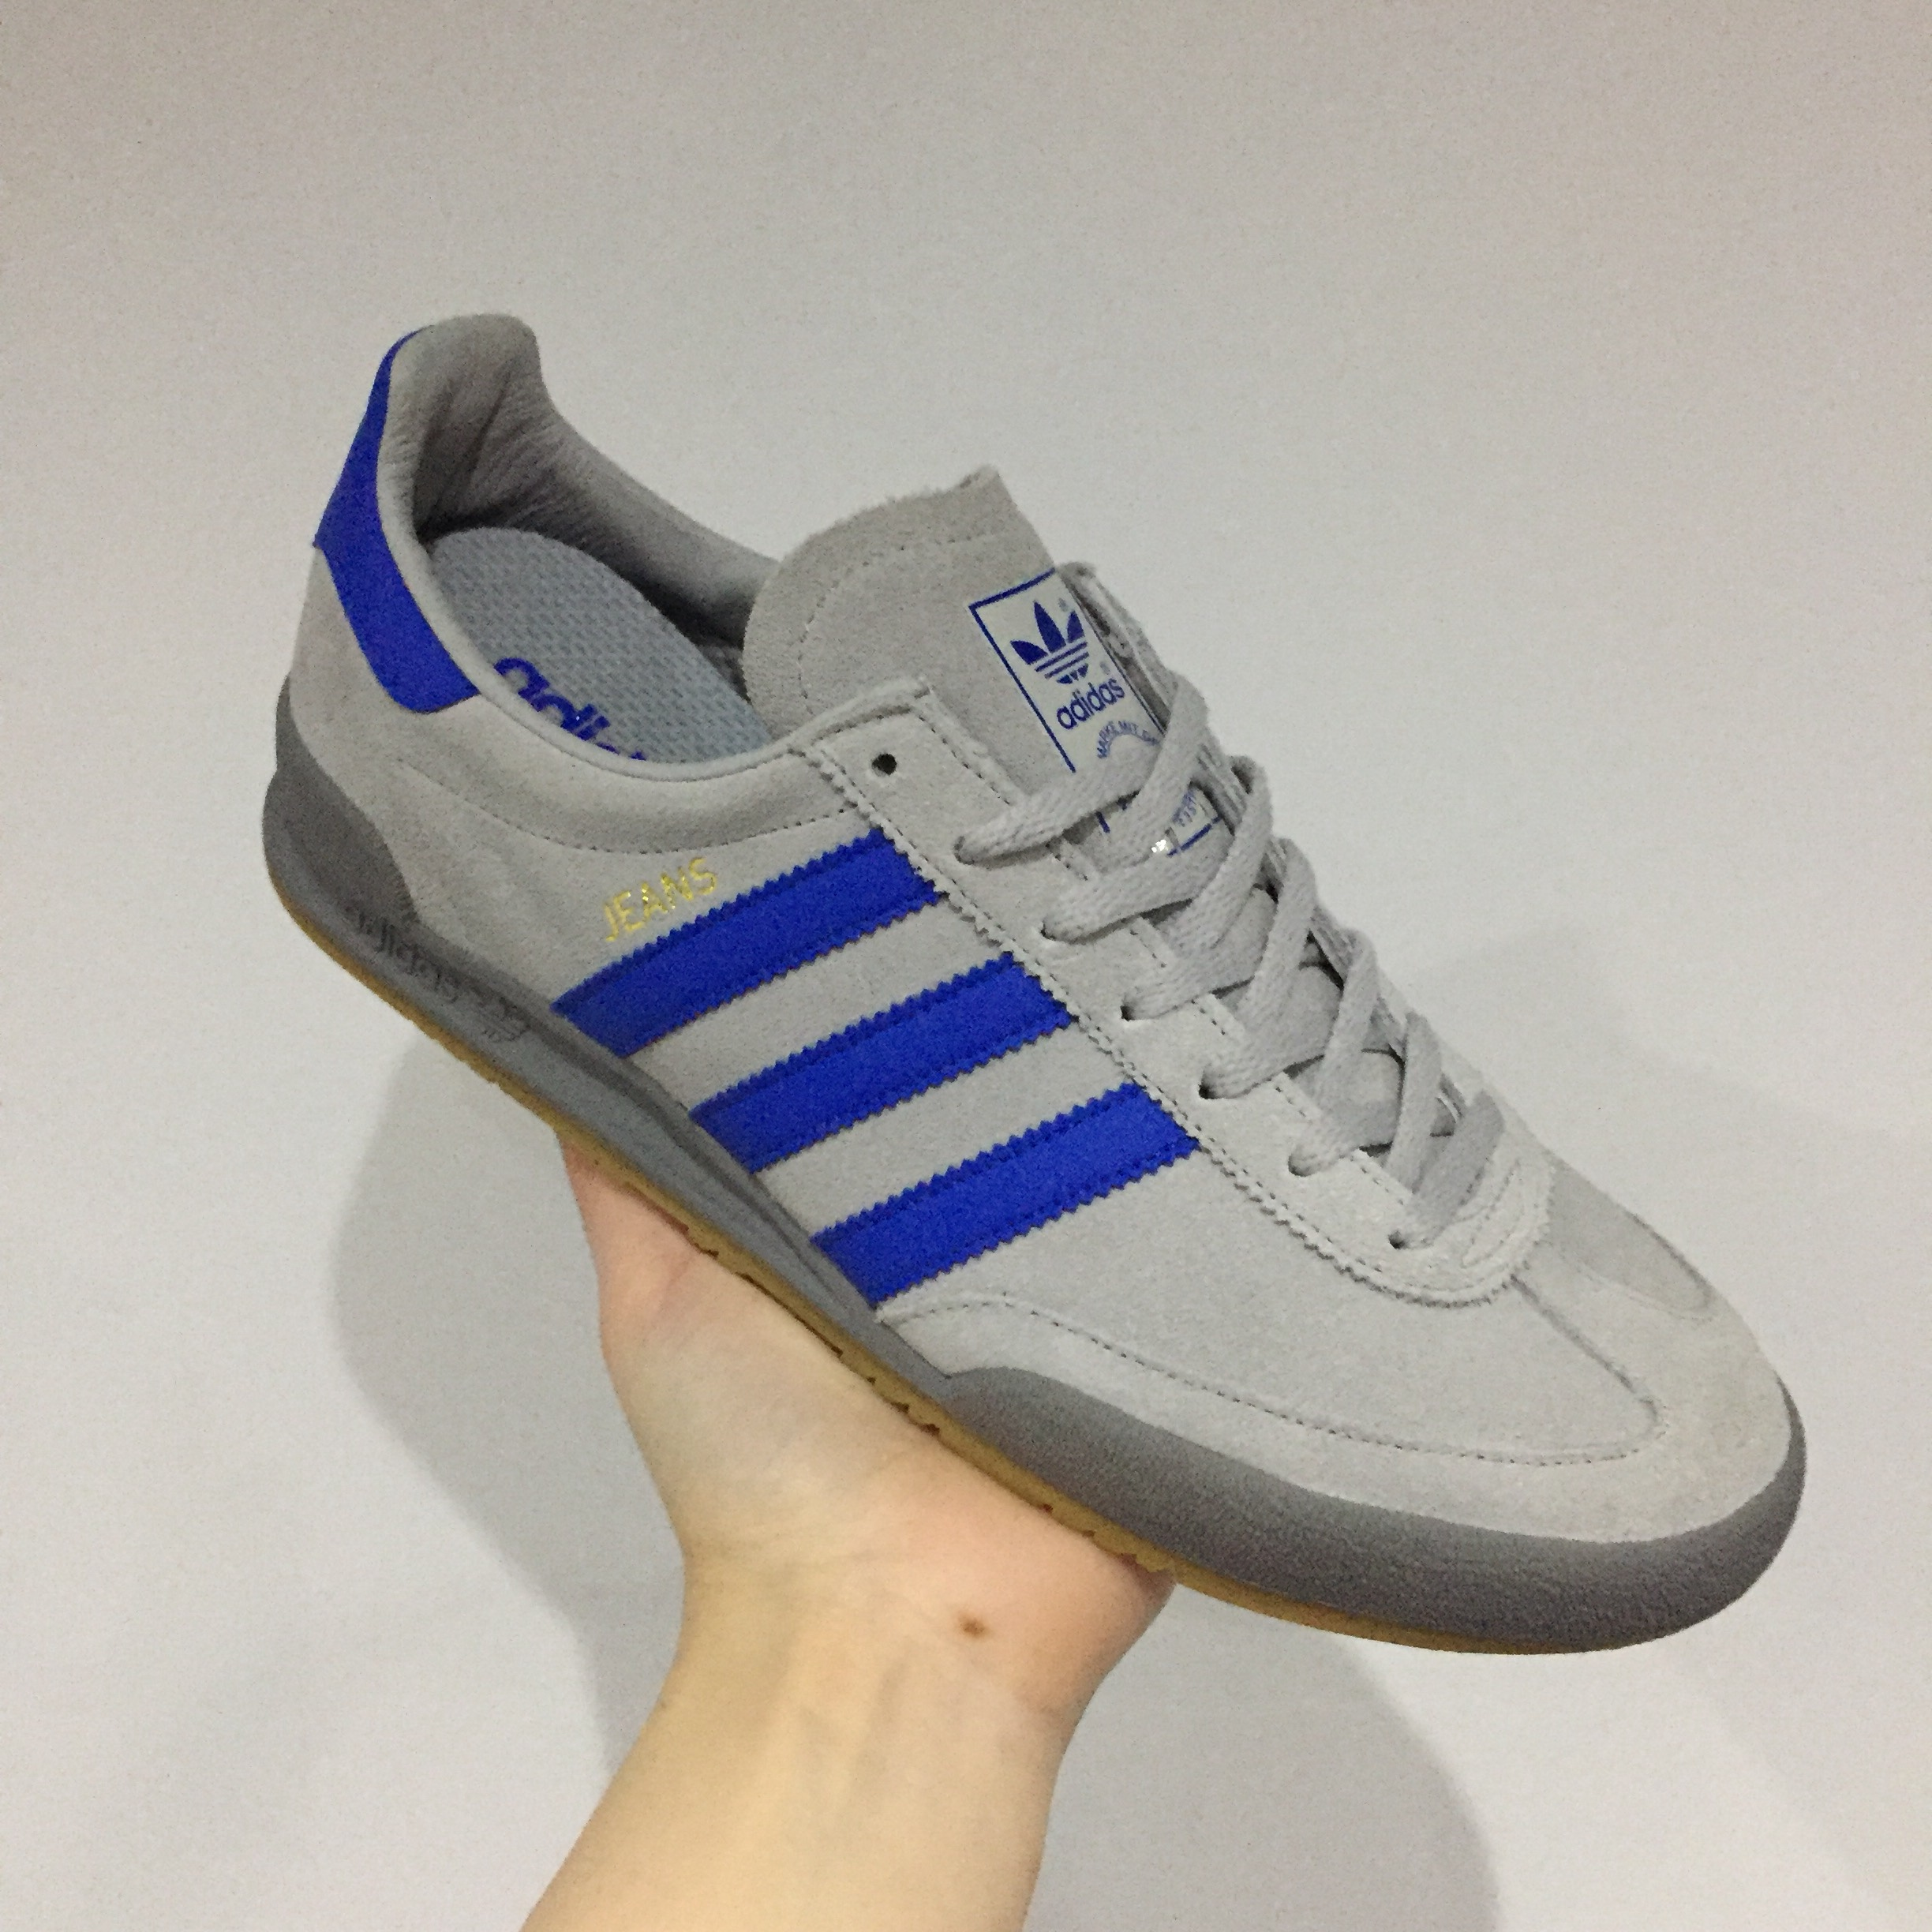 adidas jeans size 7